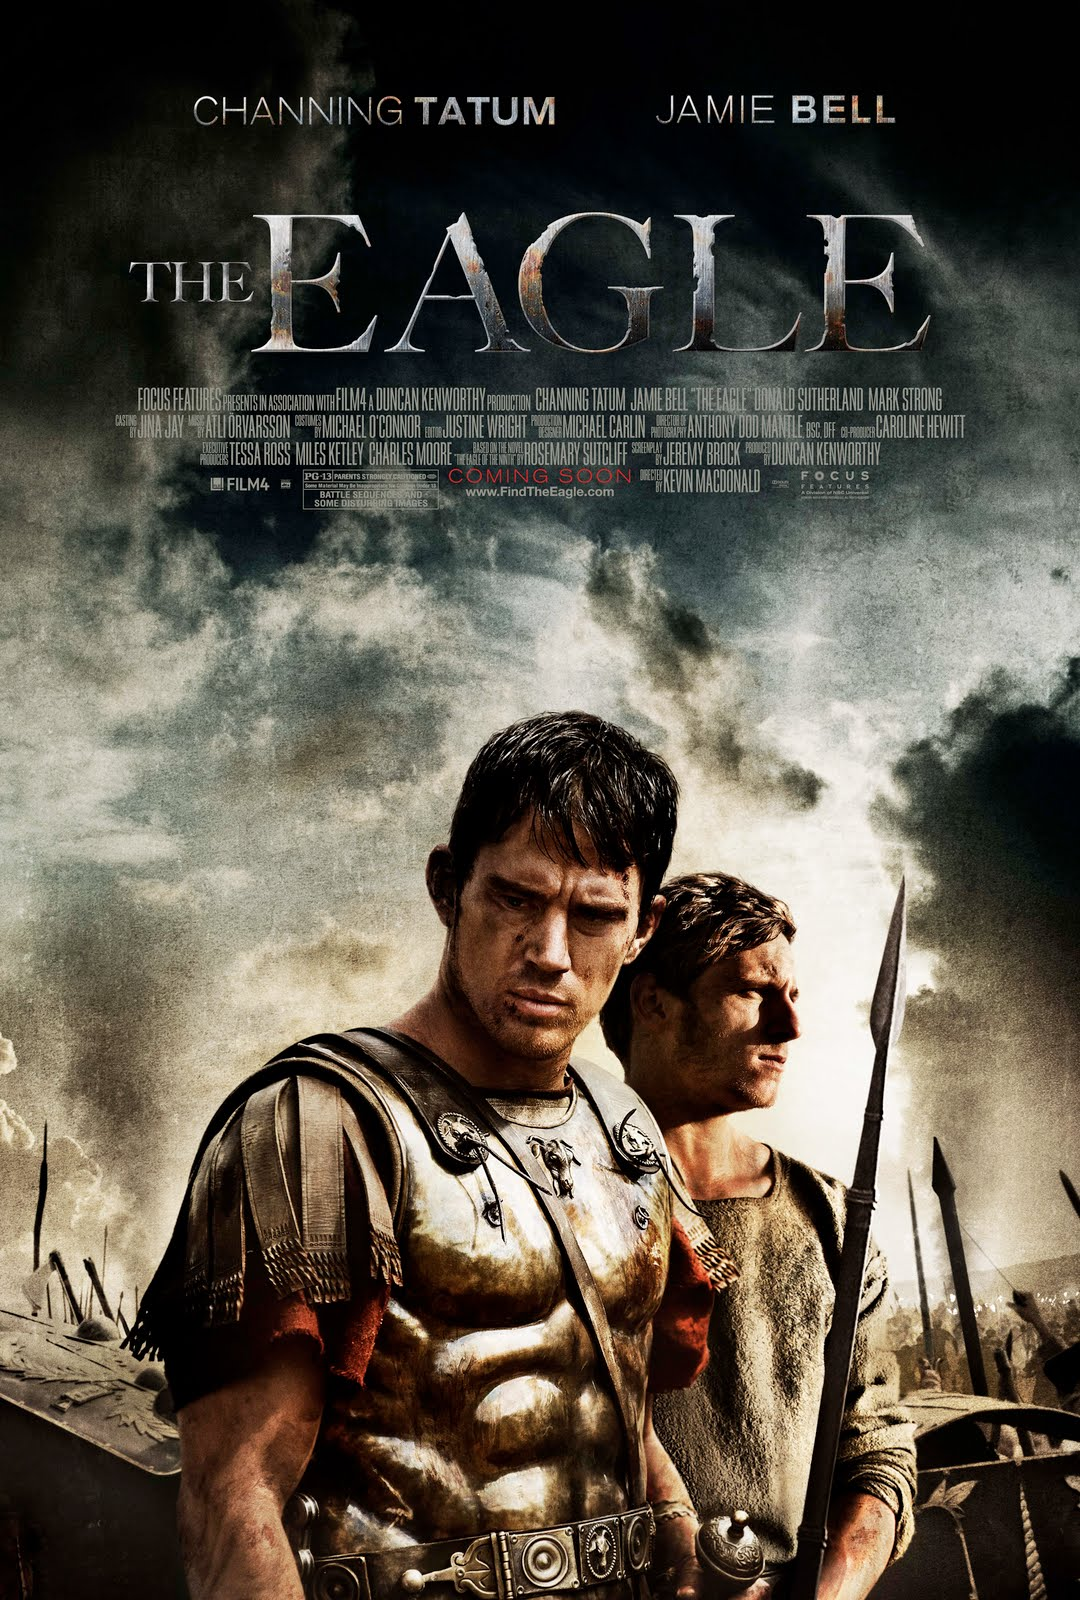 http://1.bp.blogspot.com/_CiYQ7QxeyWs/TQl8xcAUgwI/AAAAAAAAKJ4/cWdWjoQDxSg/s1600/The-Eagle-Movie-Poster-Channing-Tatum.jpg